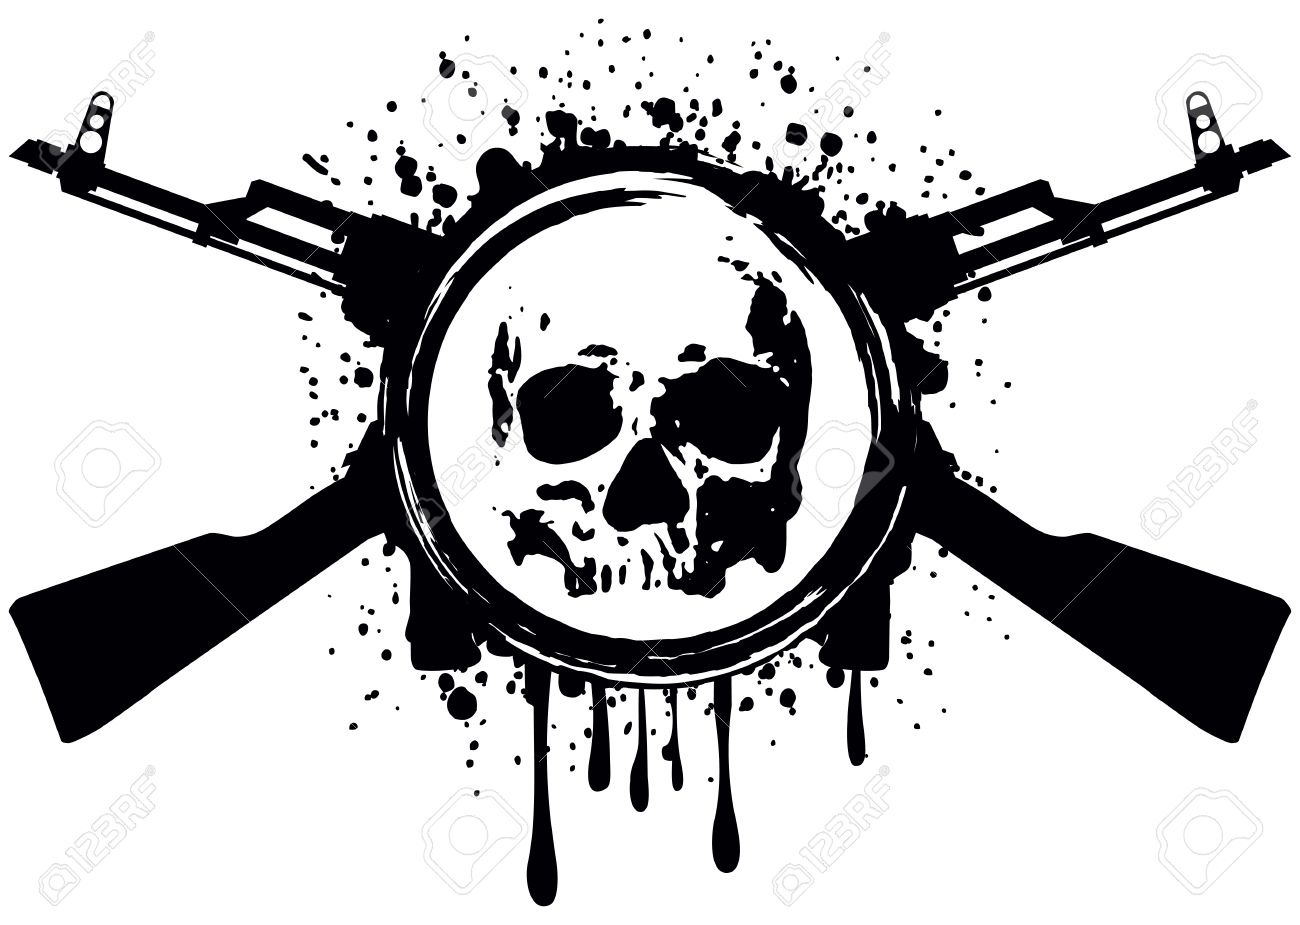 Abstract vector illustration crossed automatic rifles and skull - 36043175